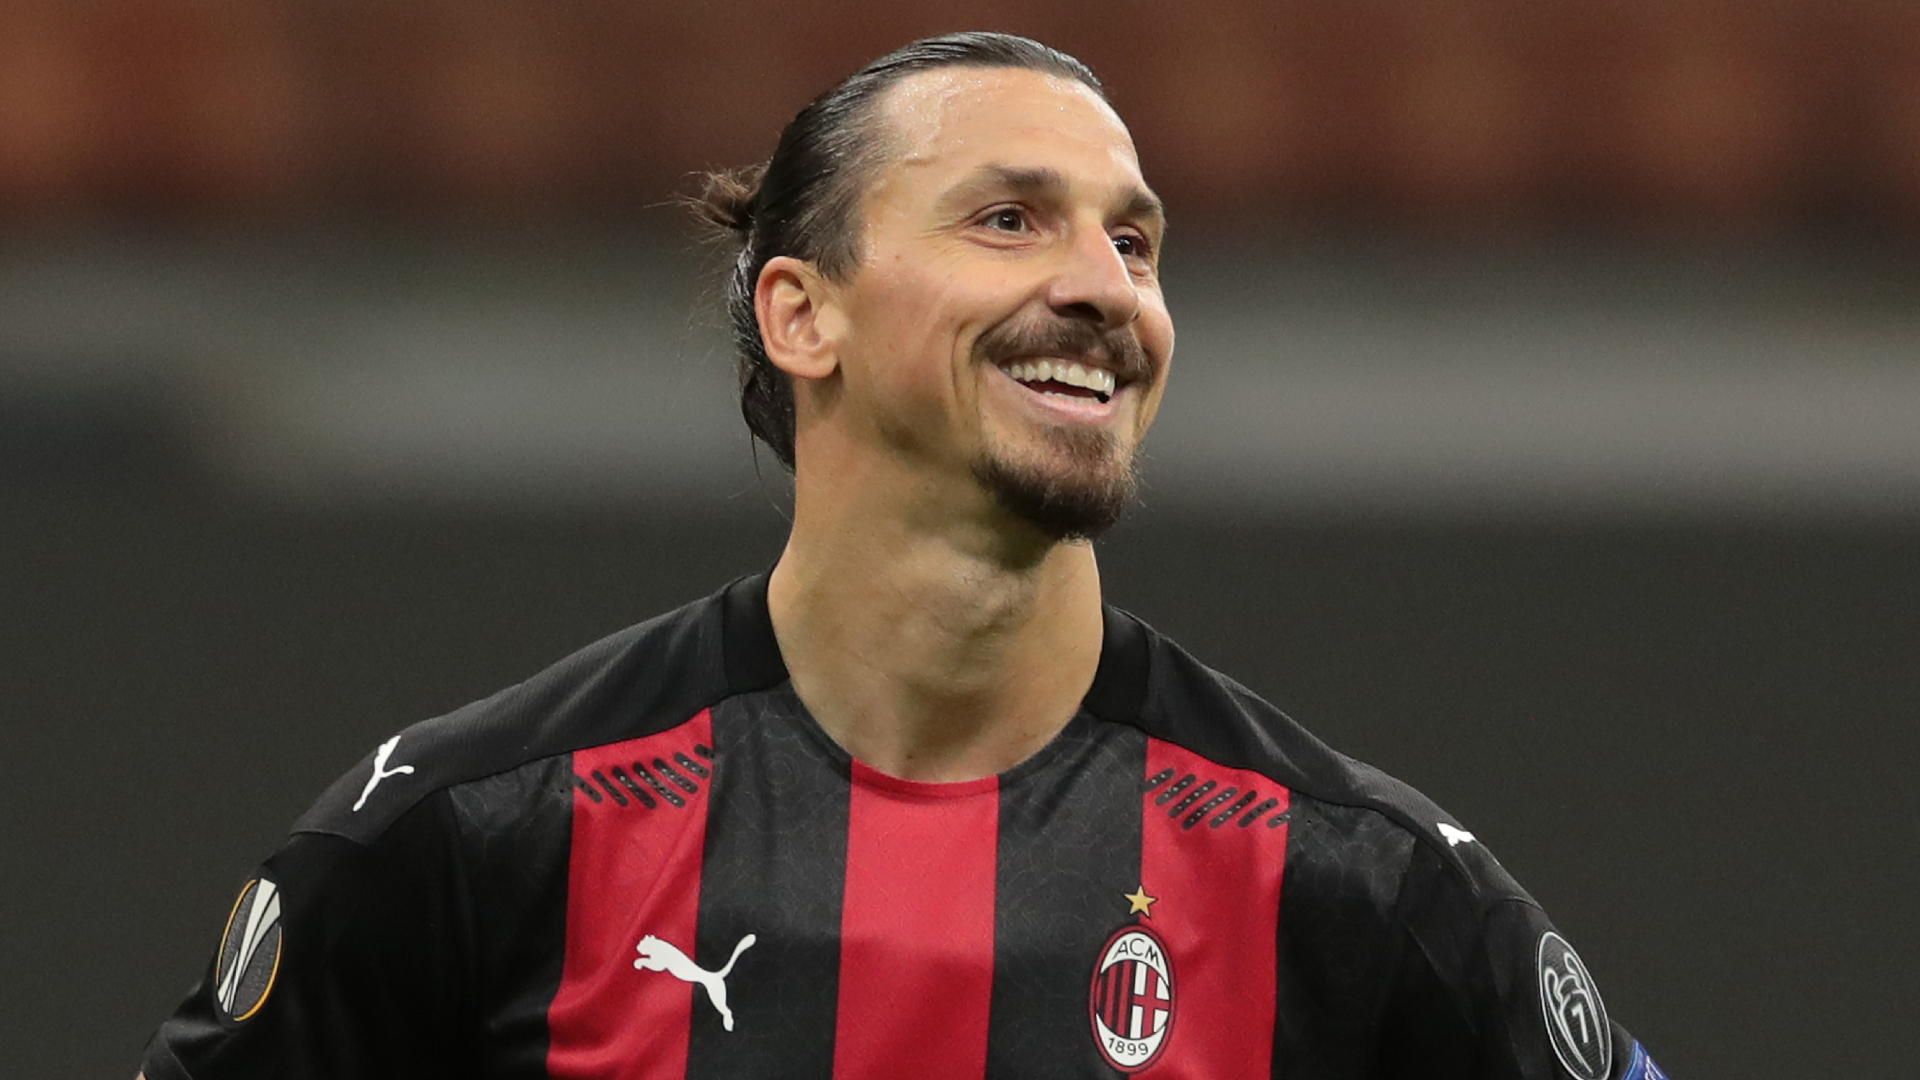 Ibrahimovic says he 'feels at home' with Milan as Gazidis gives contract extension update